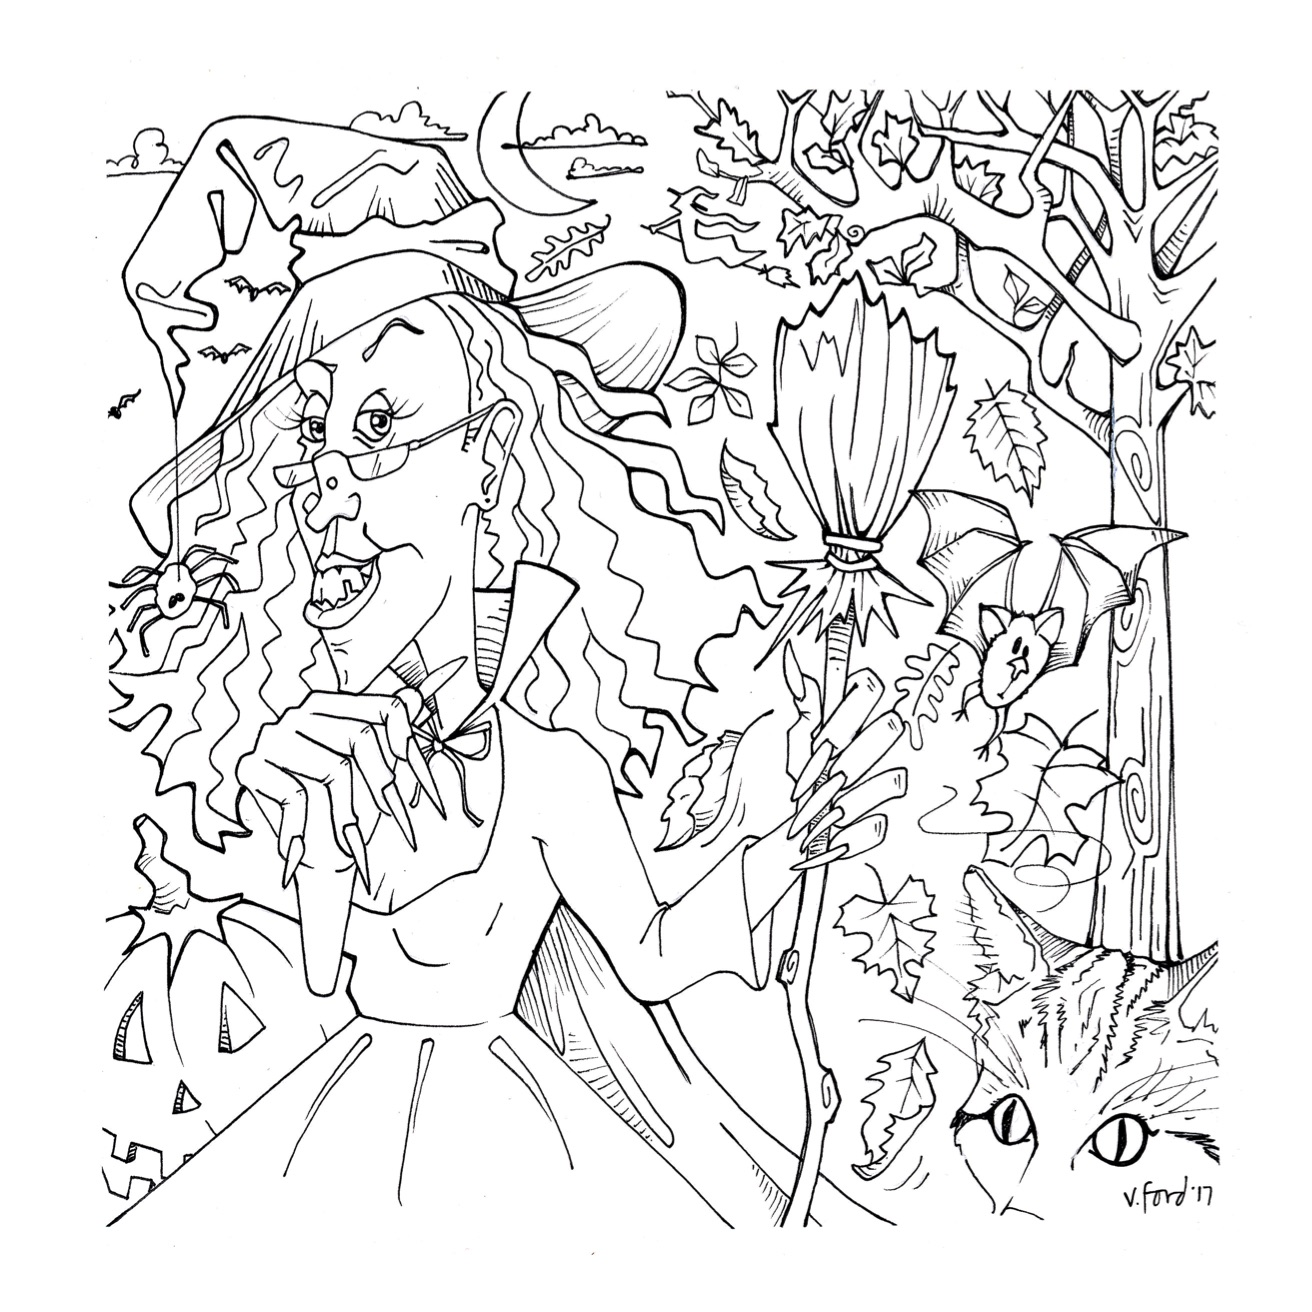 52 coloring page.jpg